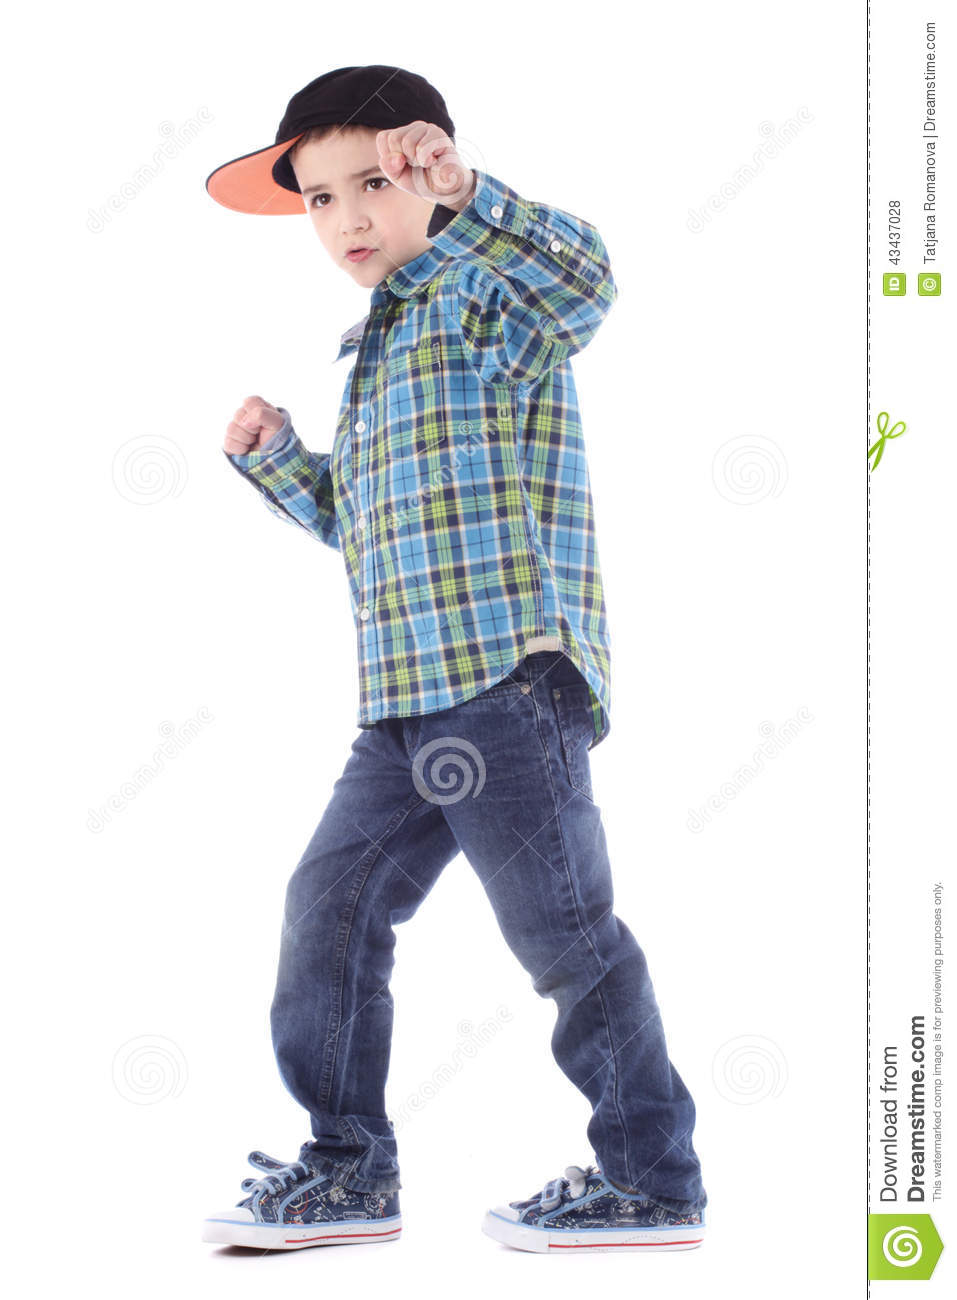 Full length portrait of smiling little boy in jeans and cup